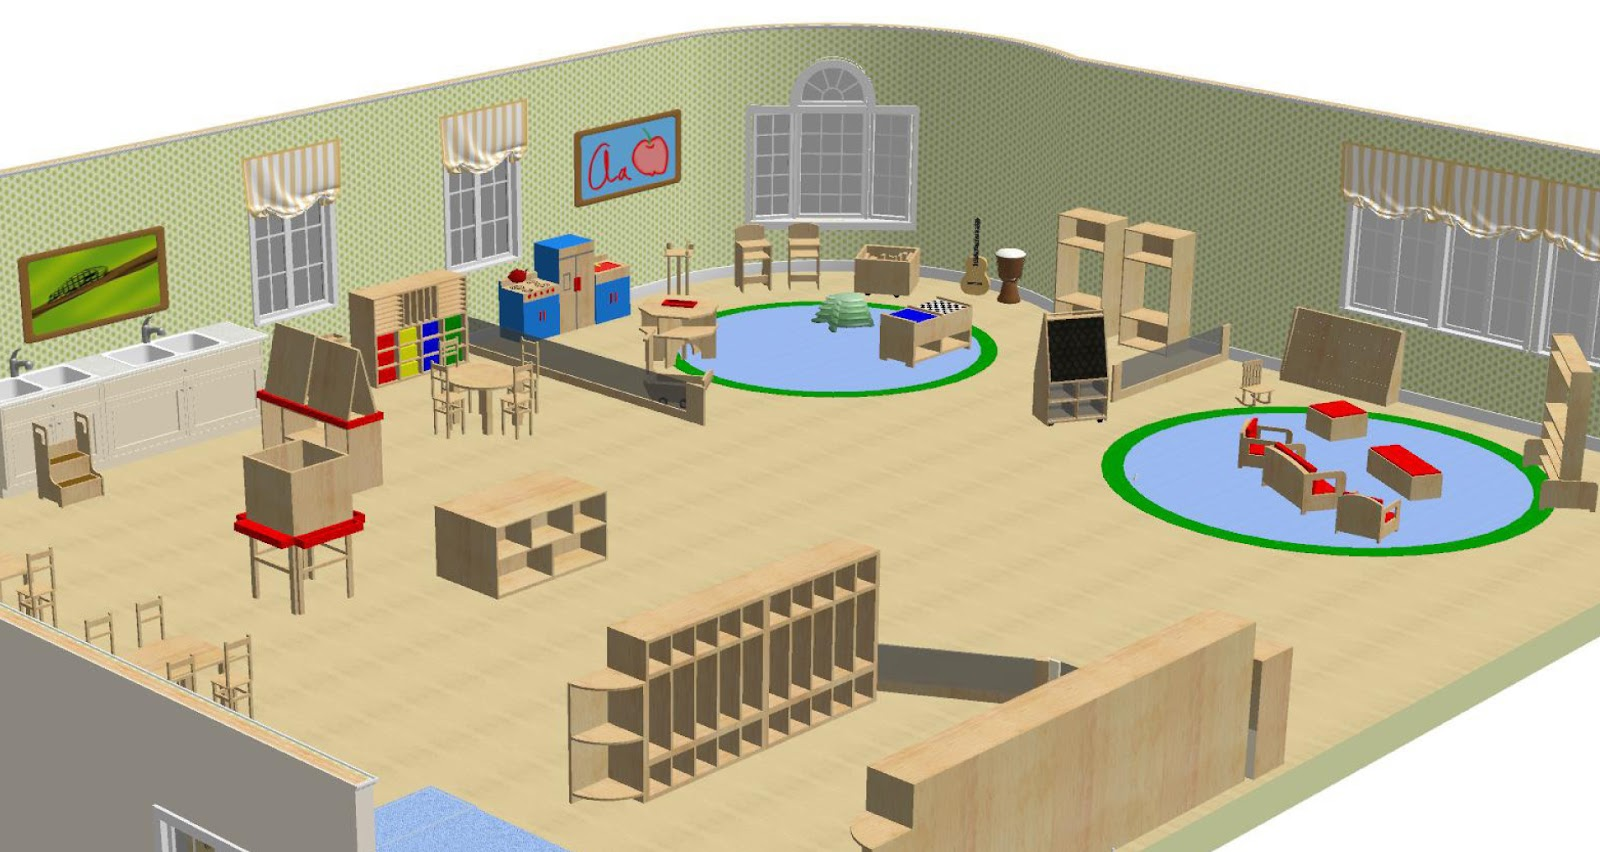 Classroom Design In Kindergarten ~ Preschool layout superb japanese modern shop interior design